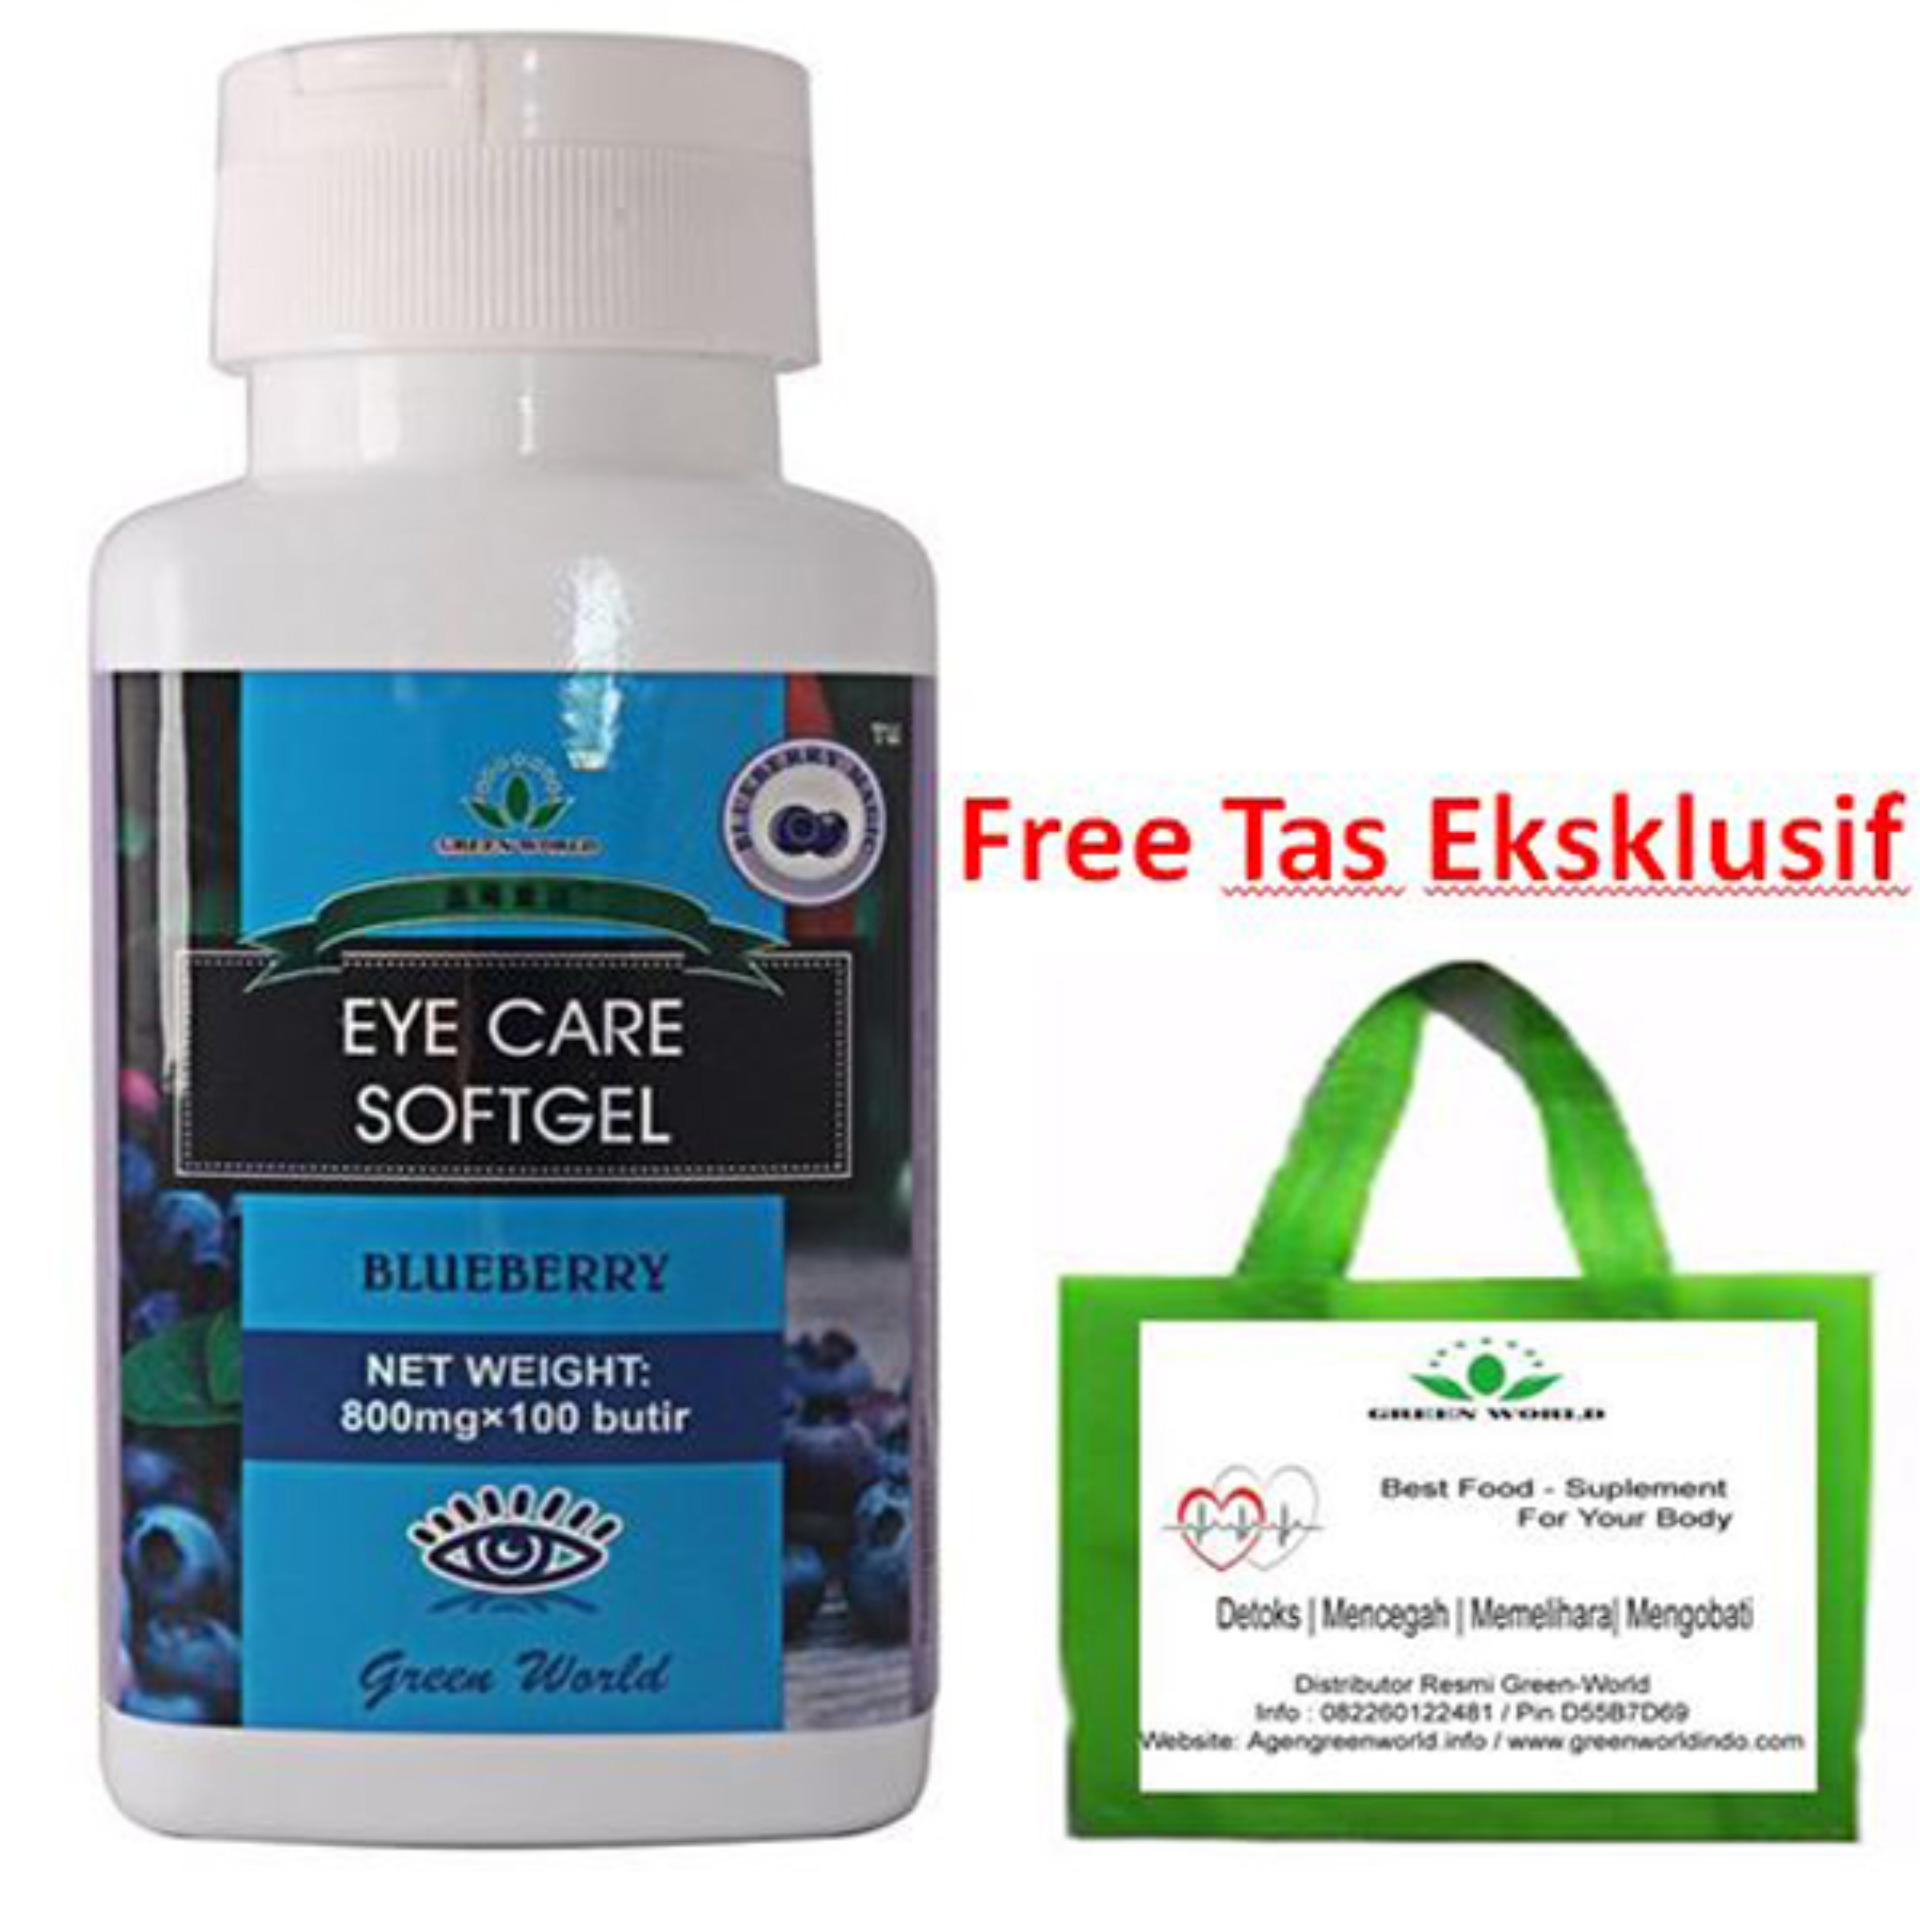 Review Green World Eye Care Softgel Bonus Tas Ekslusif Terbaru